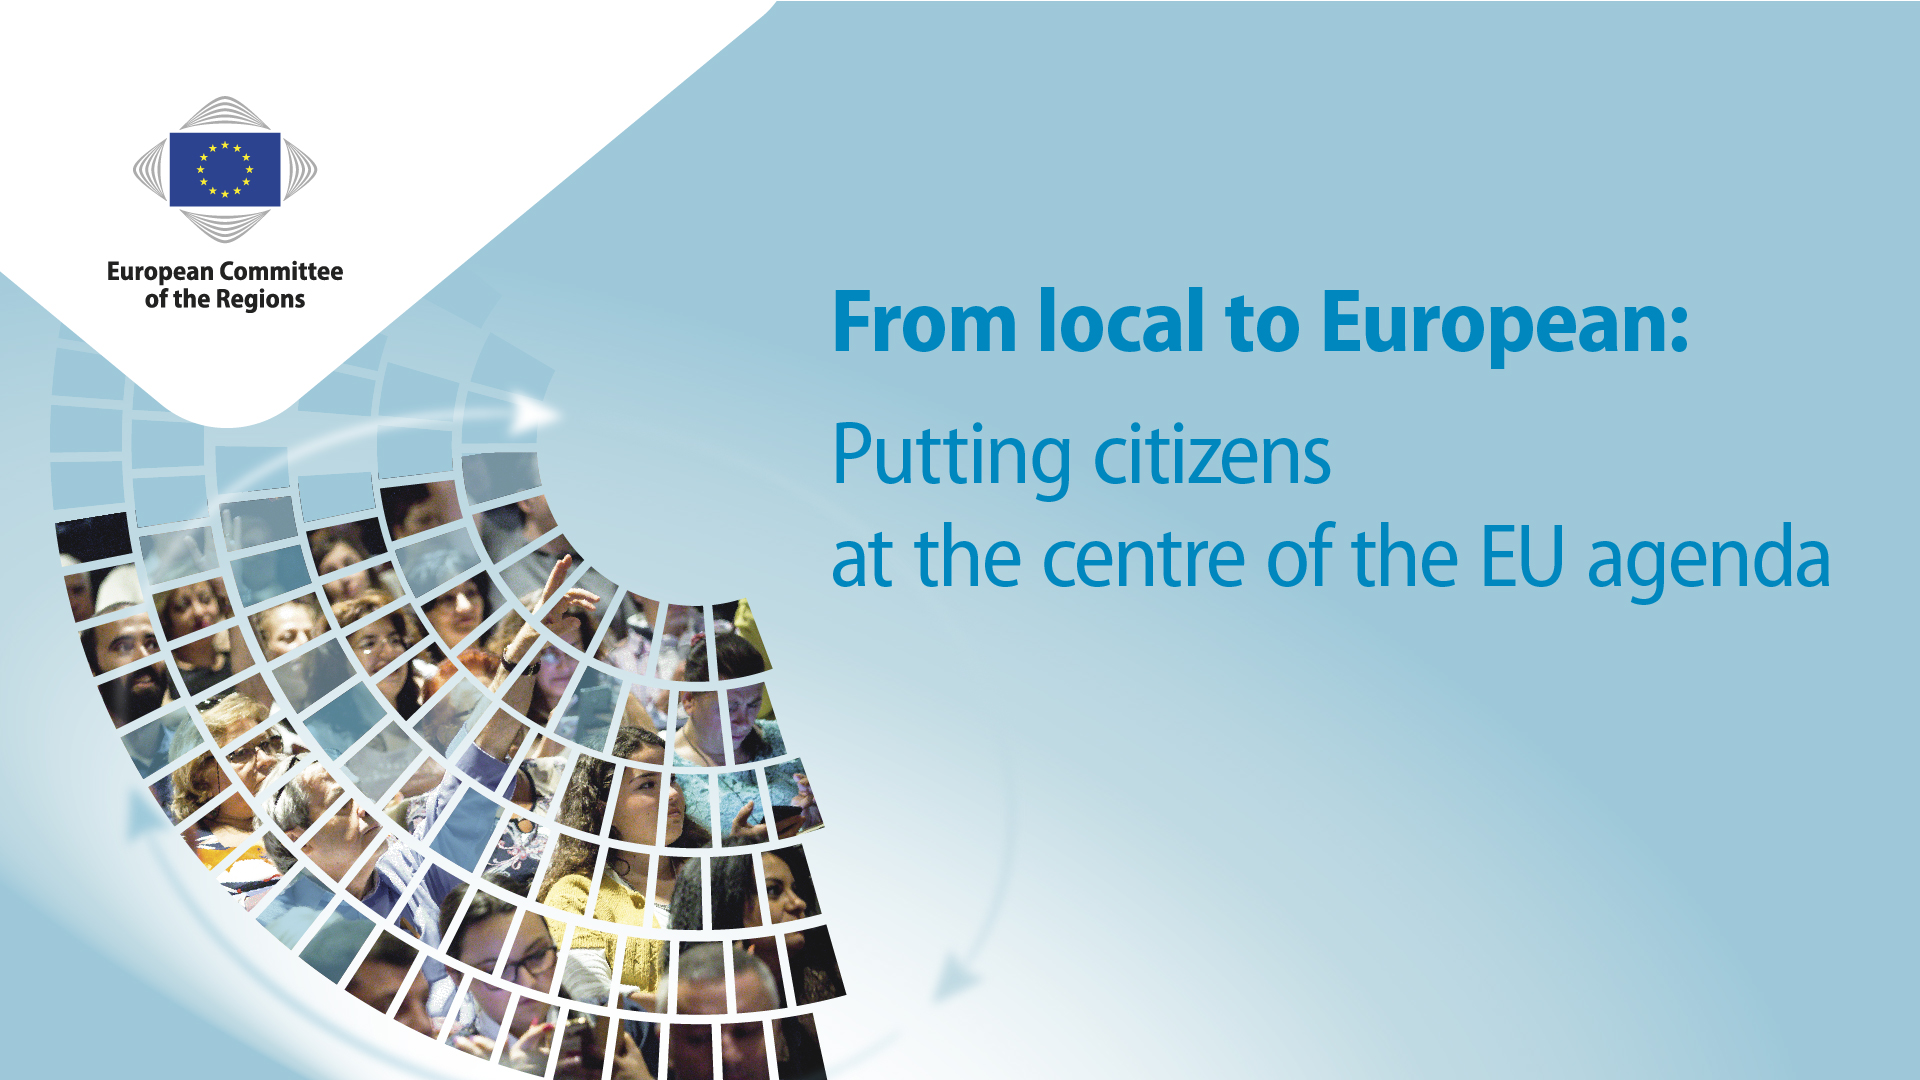 4082_Citizens in EU agenda_1920x1080px-01.jpg